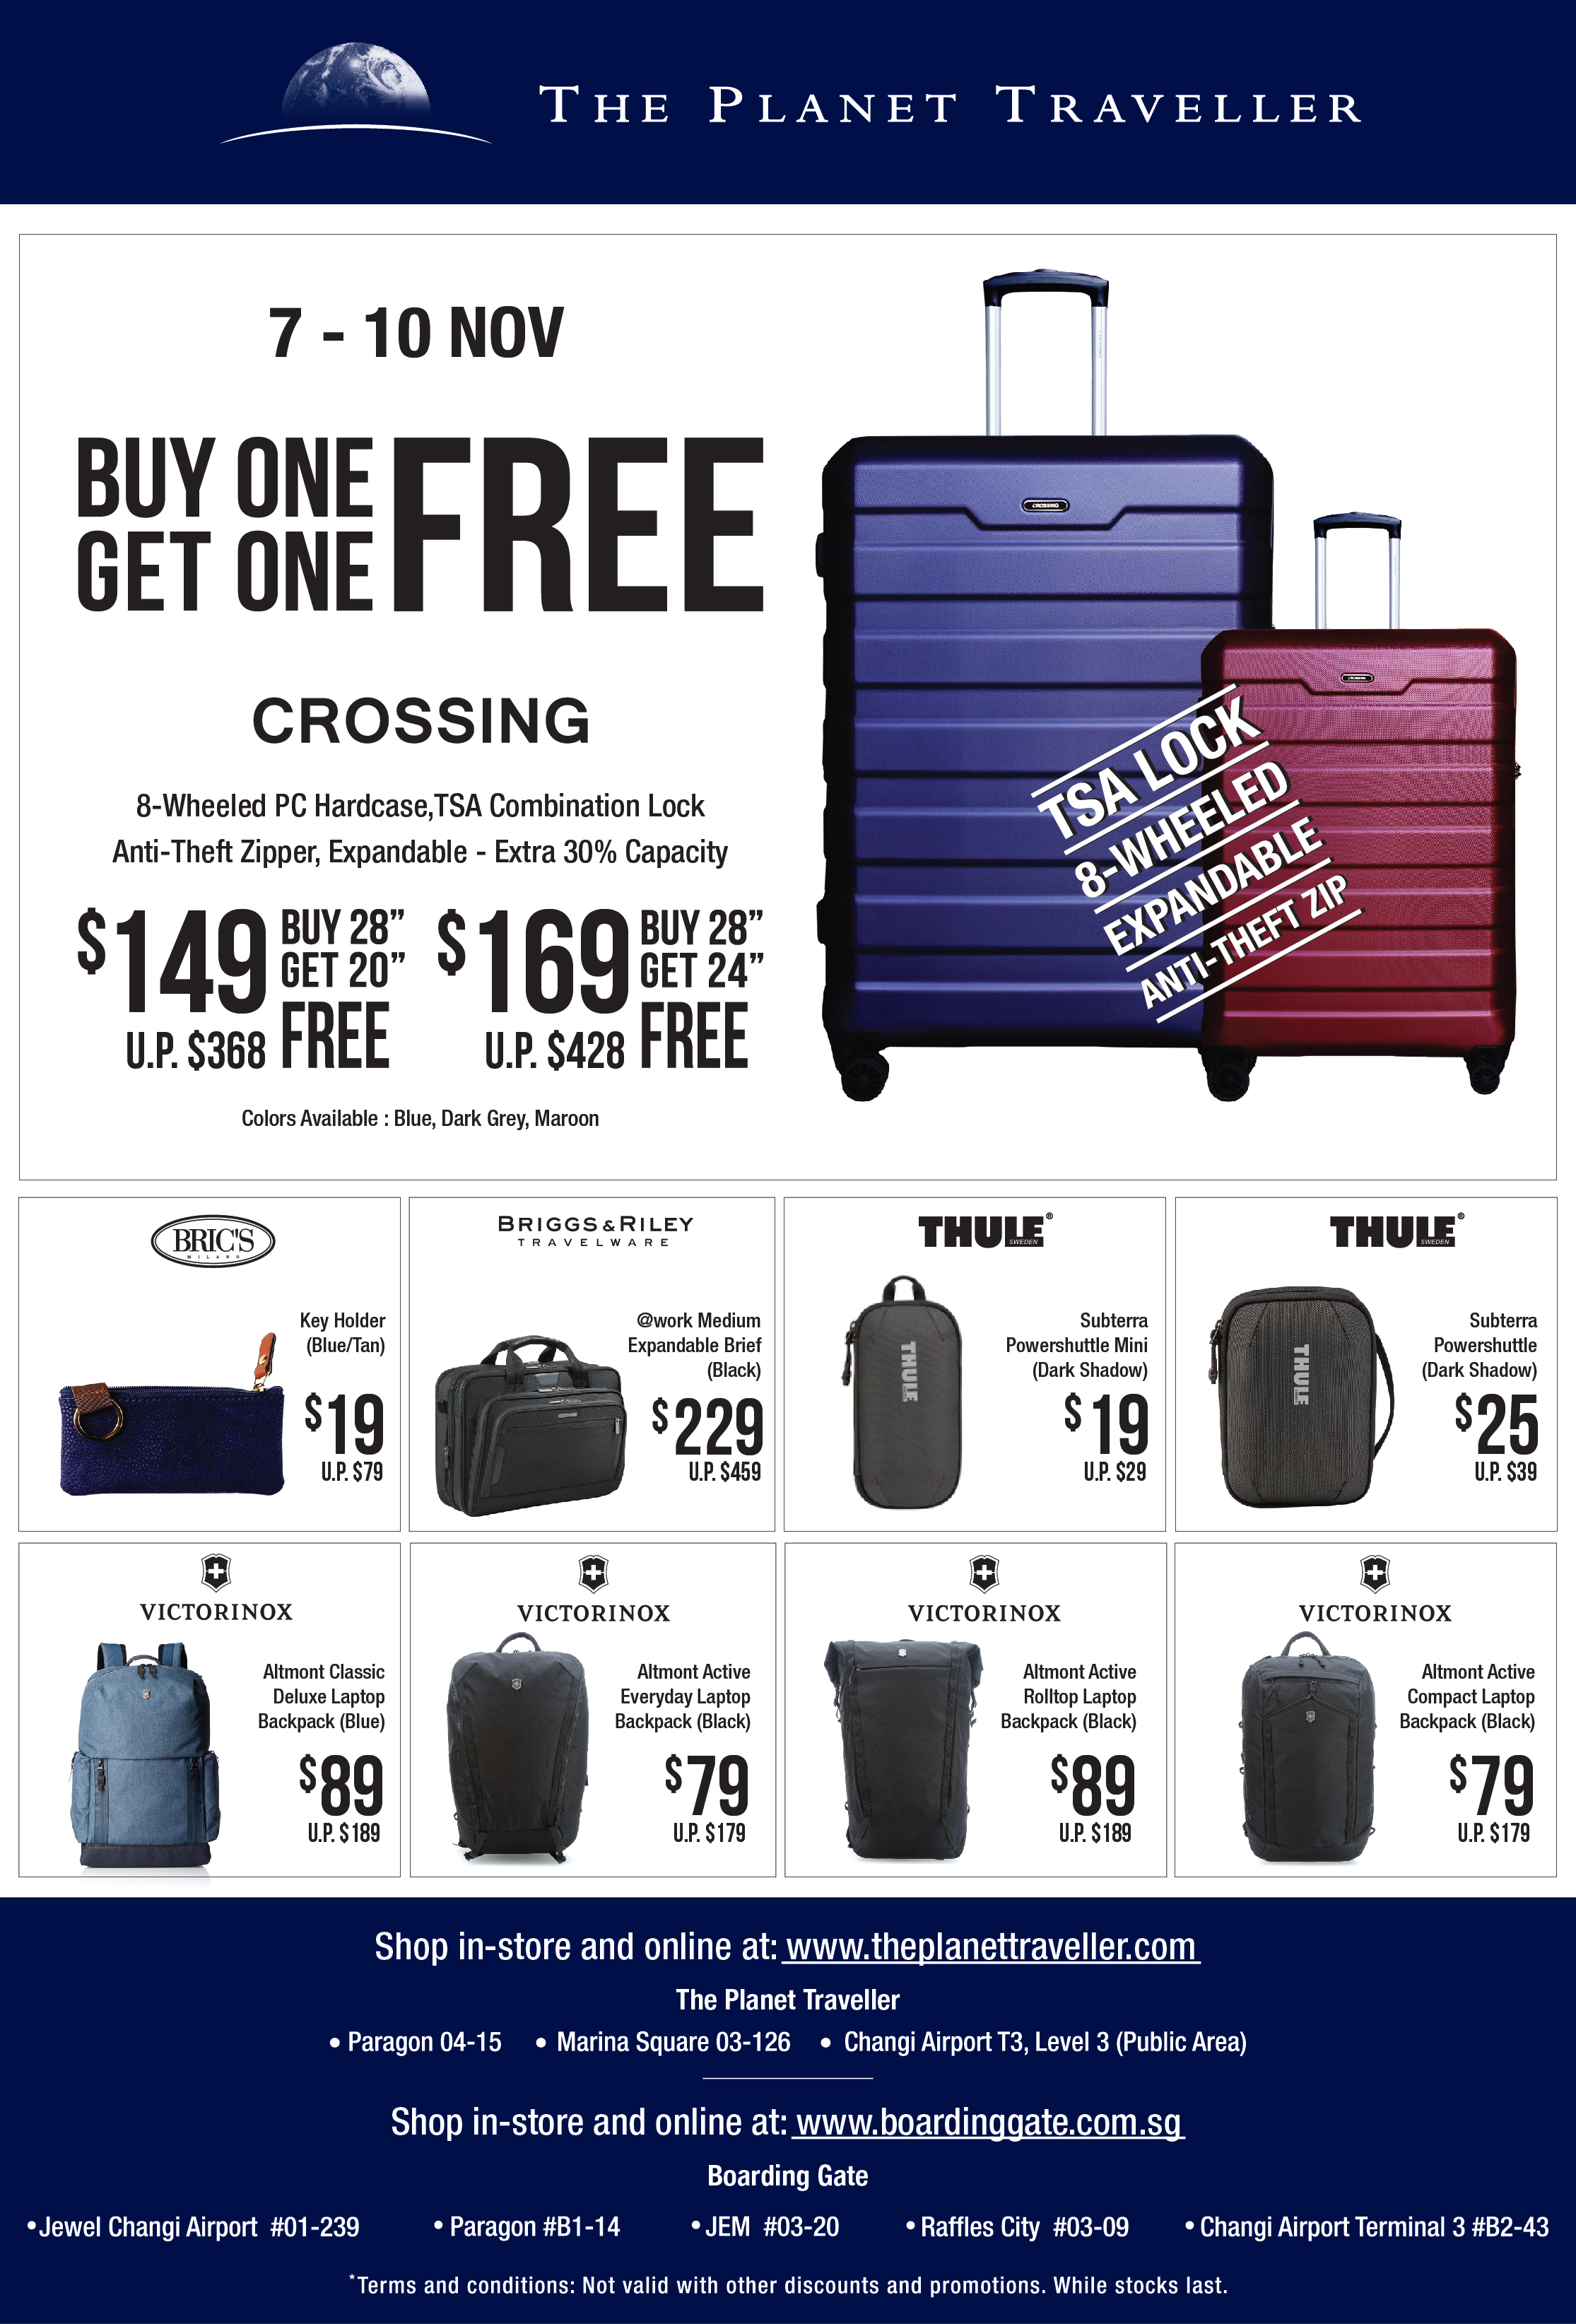 The Planet Traveller Singapore is having a Buy One Get FREE Promotion 7-10 Nov 2019   Why Not Deals & Promotions